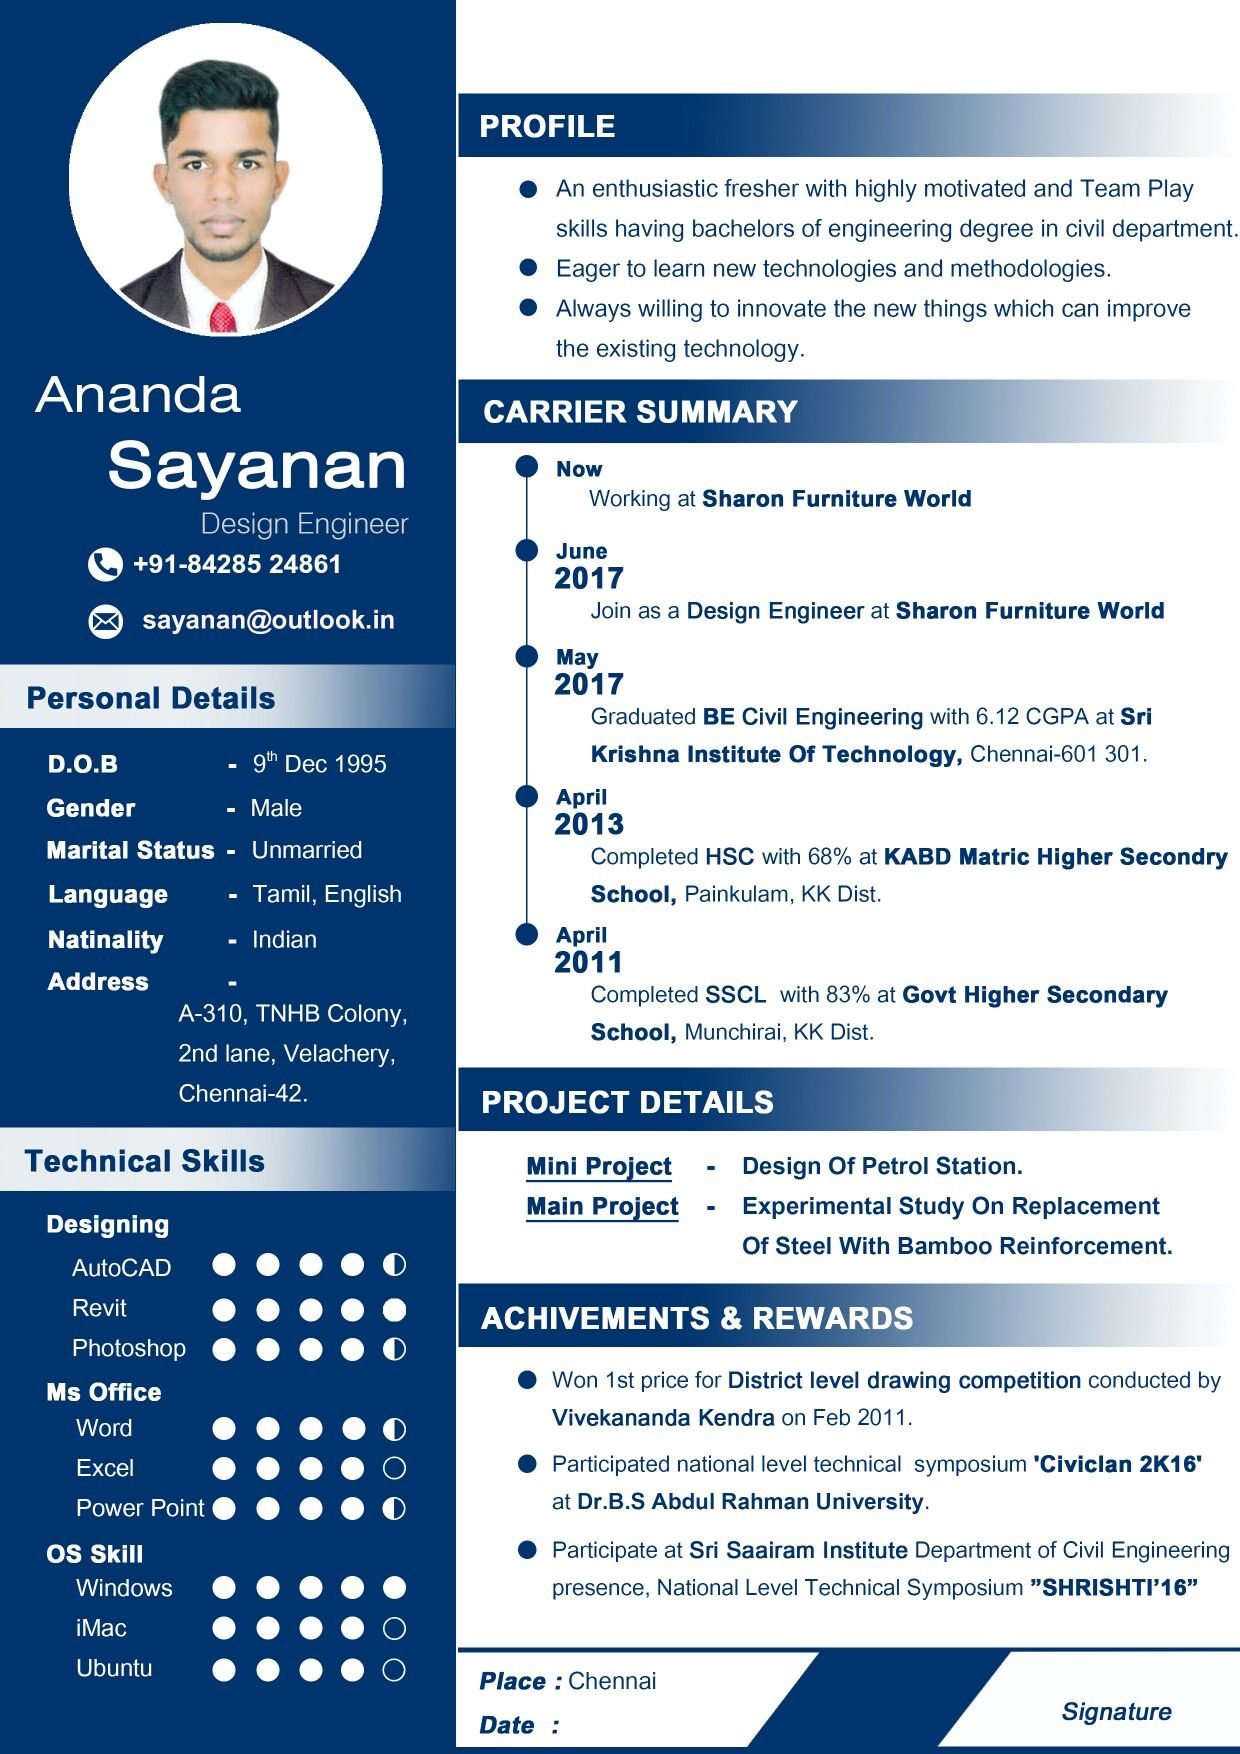 Sample Resume For Fresher Civil Engineer Professional Cv For Fresher Curriculum Vitae Resume Resume